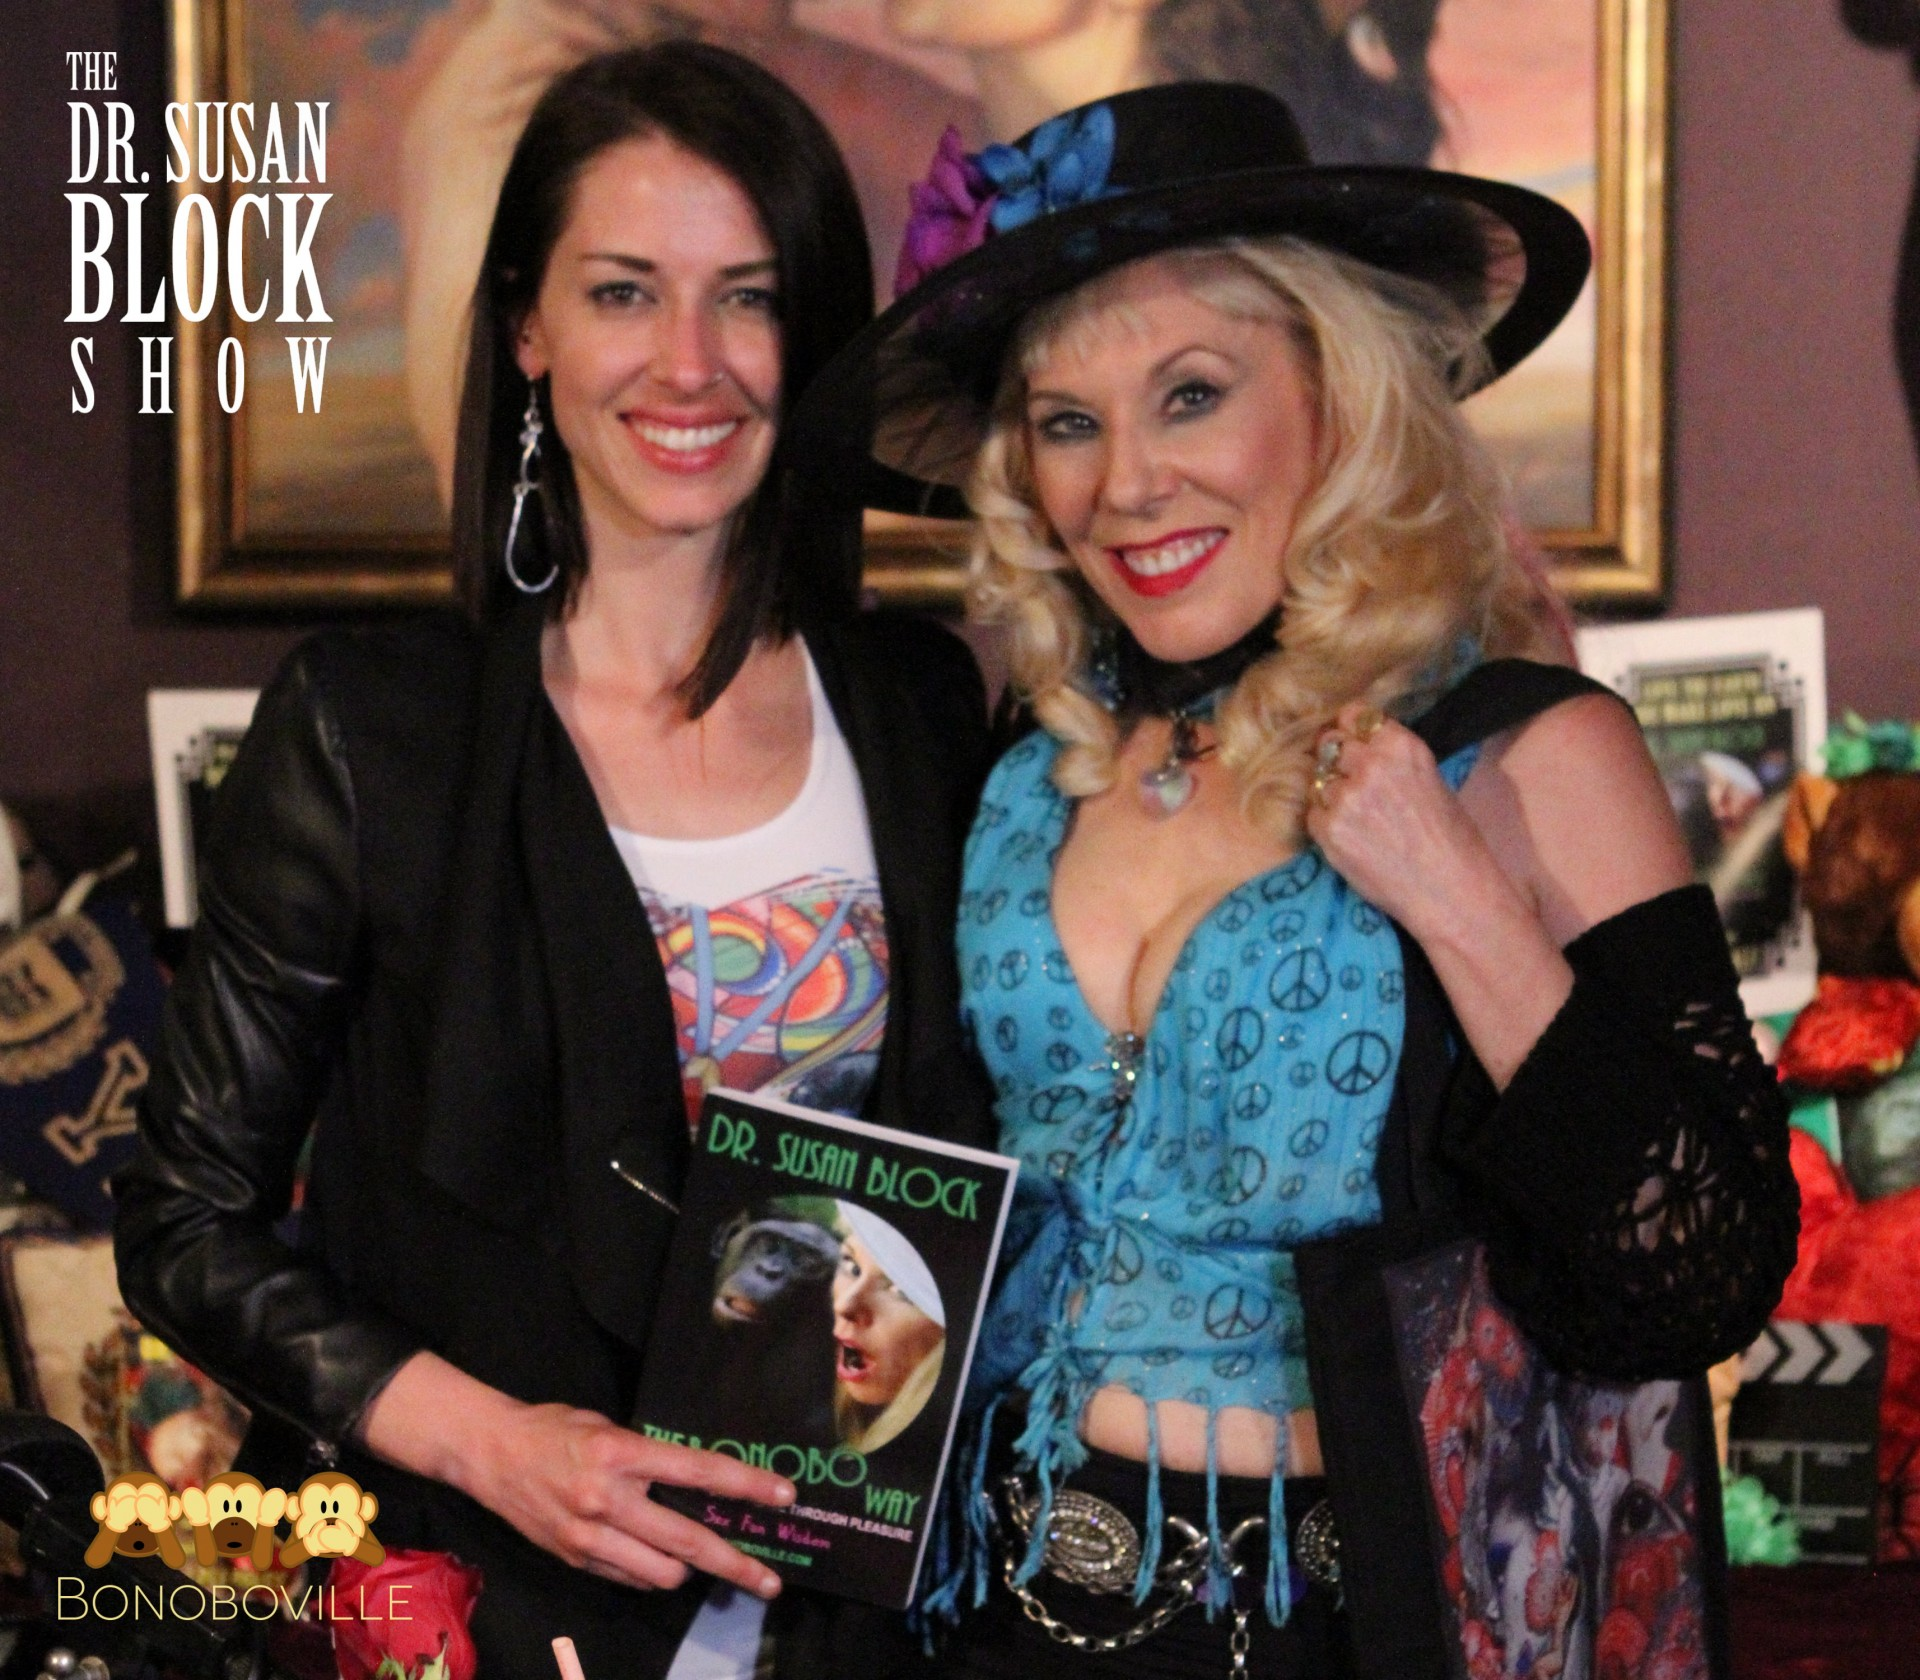 Abby Martin on The Dr. Susan Block Show!